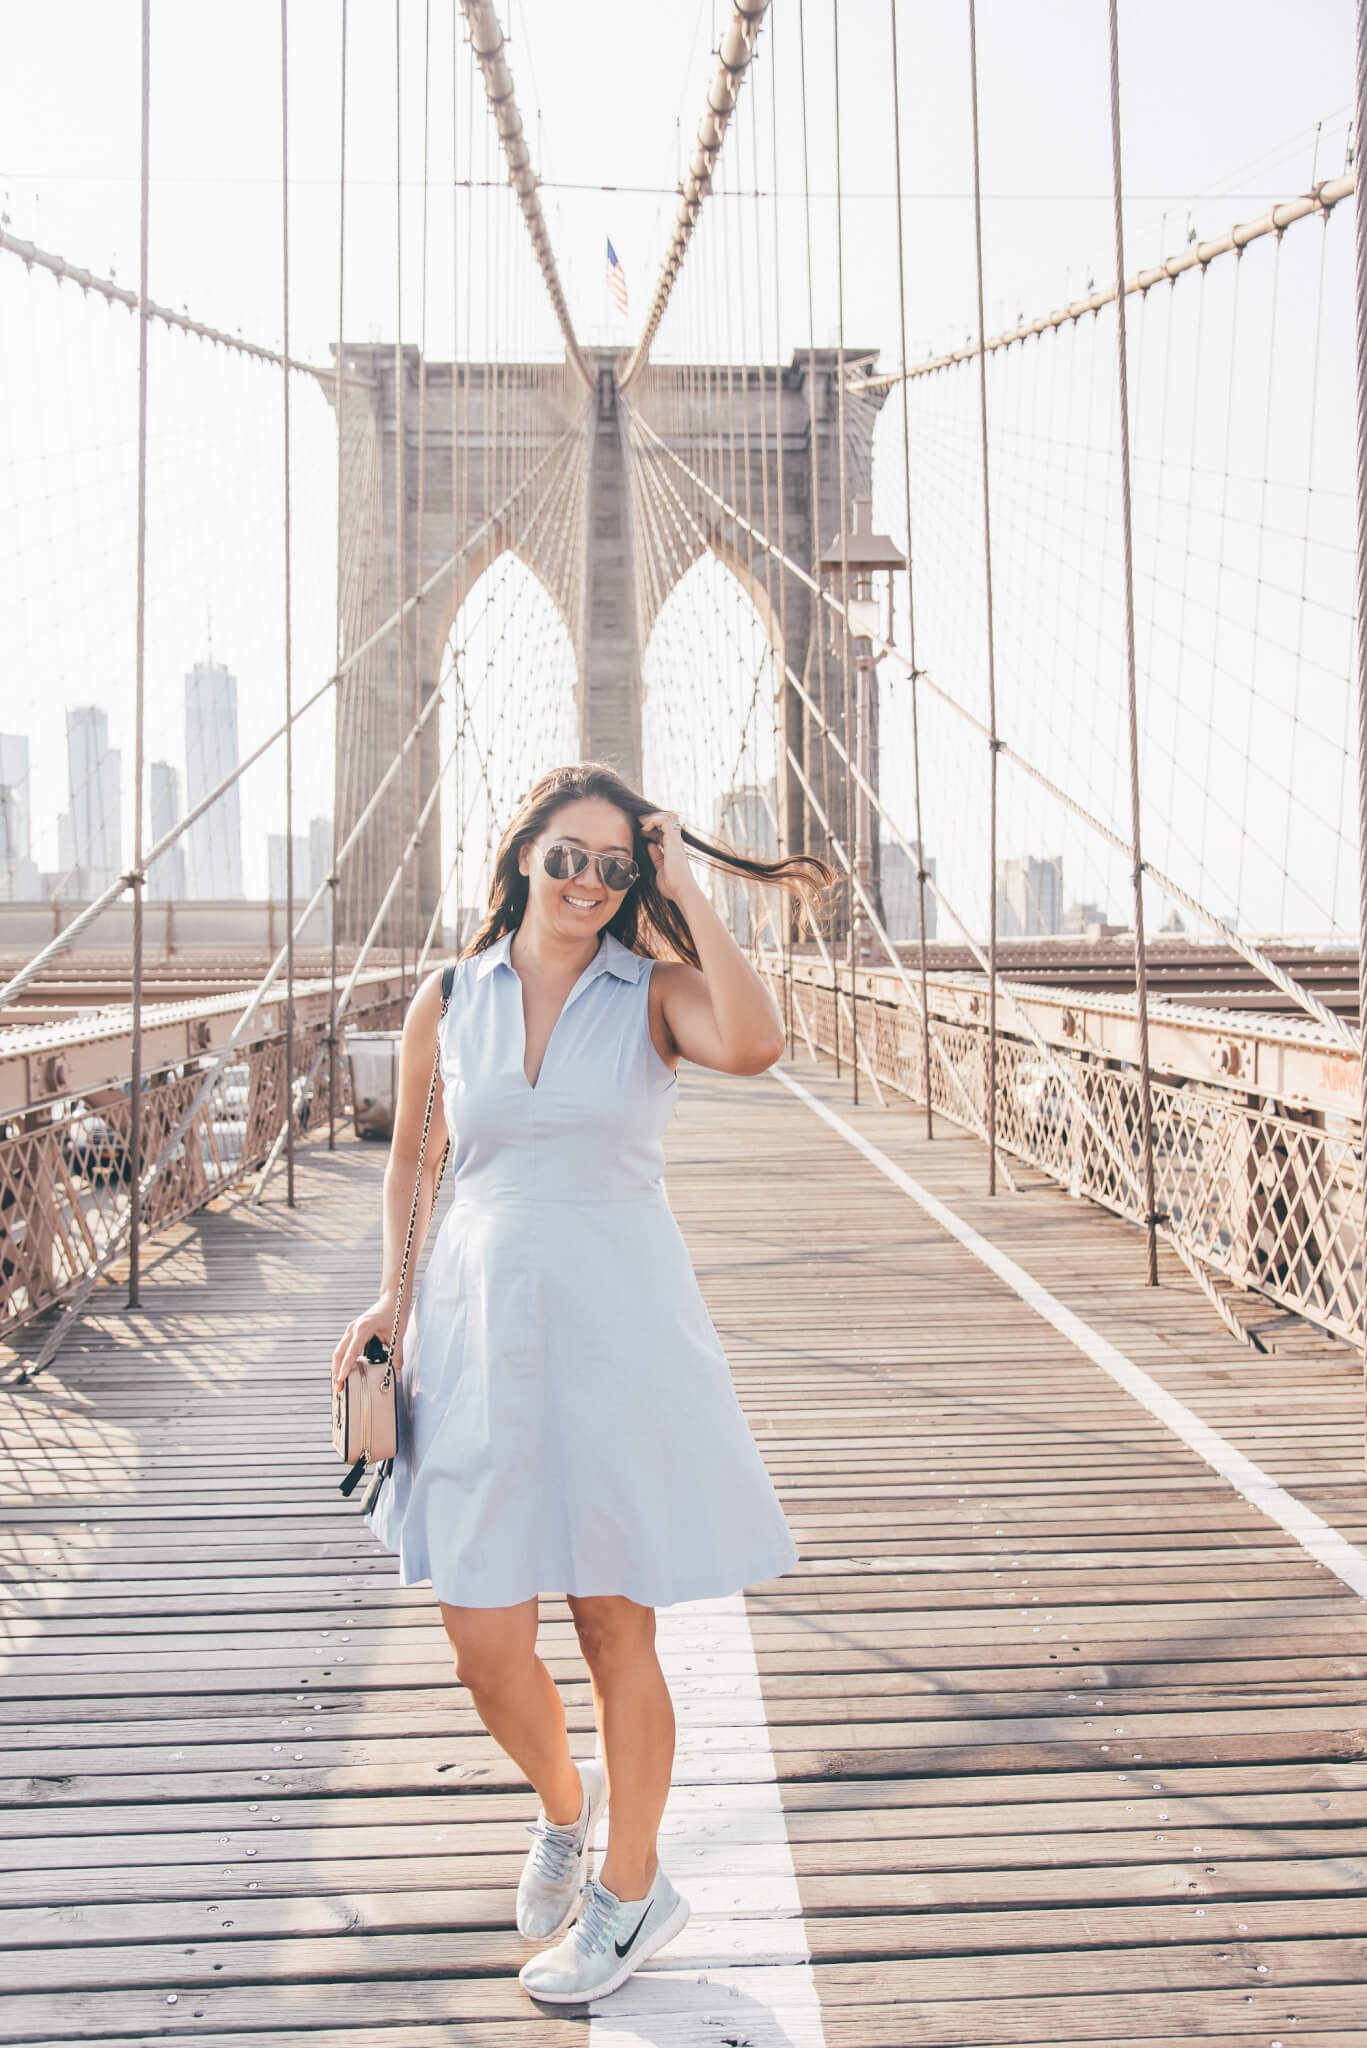 You feel like Brooklyn in the Summer - Casual Summer Outfit featured by popular San Francisco fashion blogger WTFab